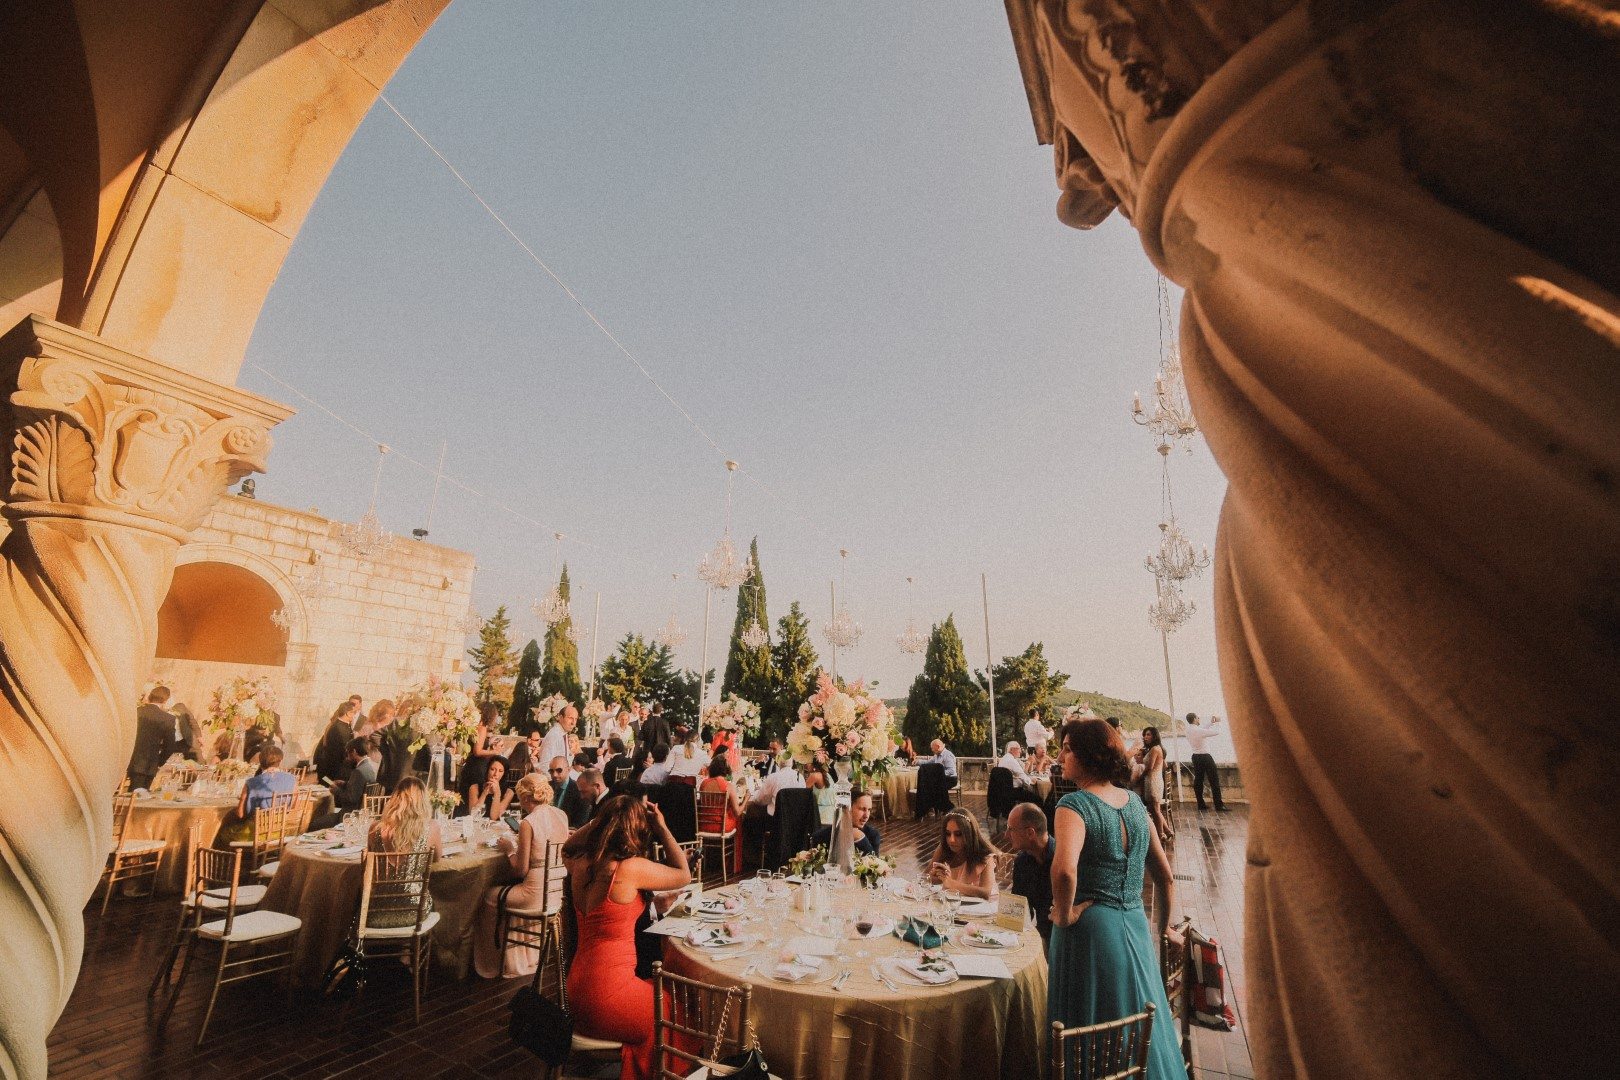 This is a photo of the wedding reception on the Art gallery terrace in Dubrovnik. The camera is behind the collumns and facing the round tables with guests. They are waiting for the couple to arrive. Some are sitting and some are standing. There are chandeliers above them.